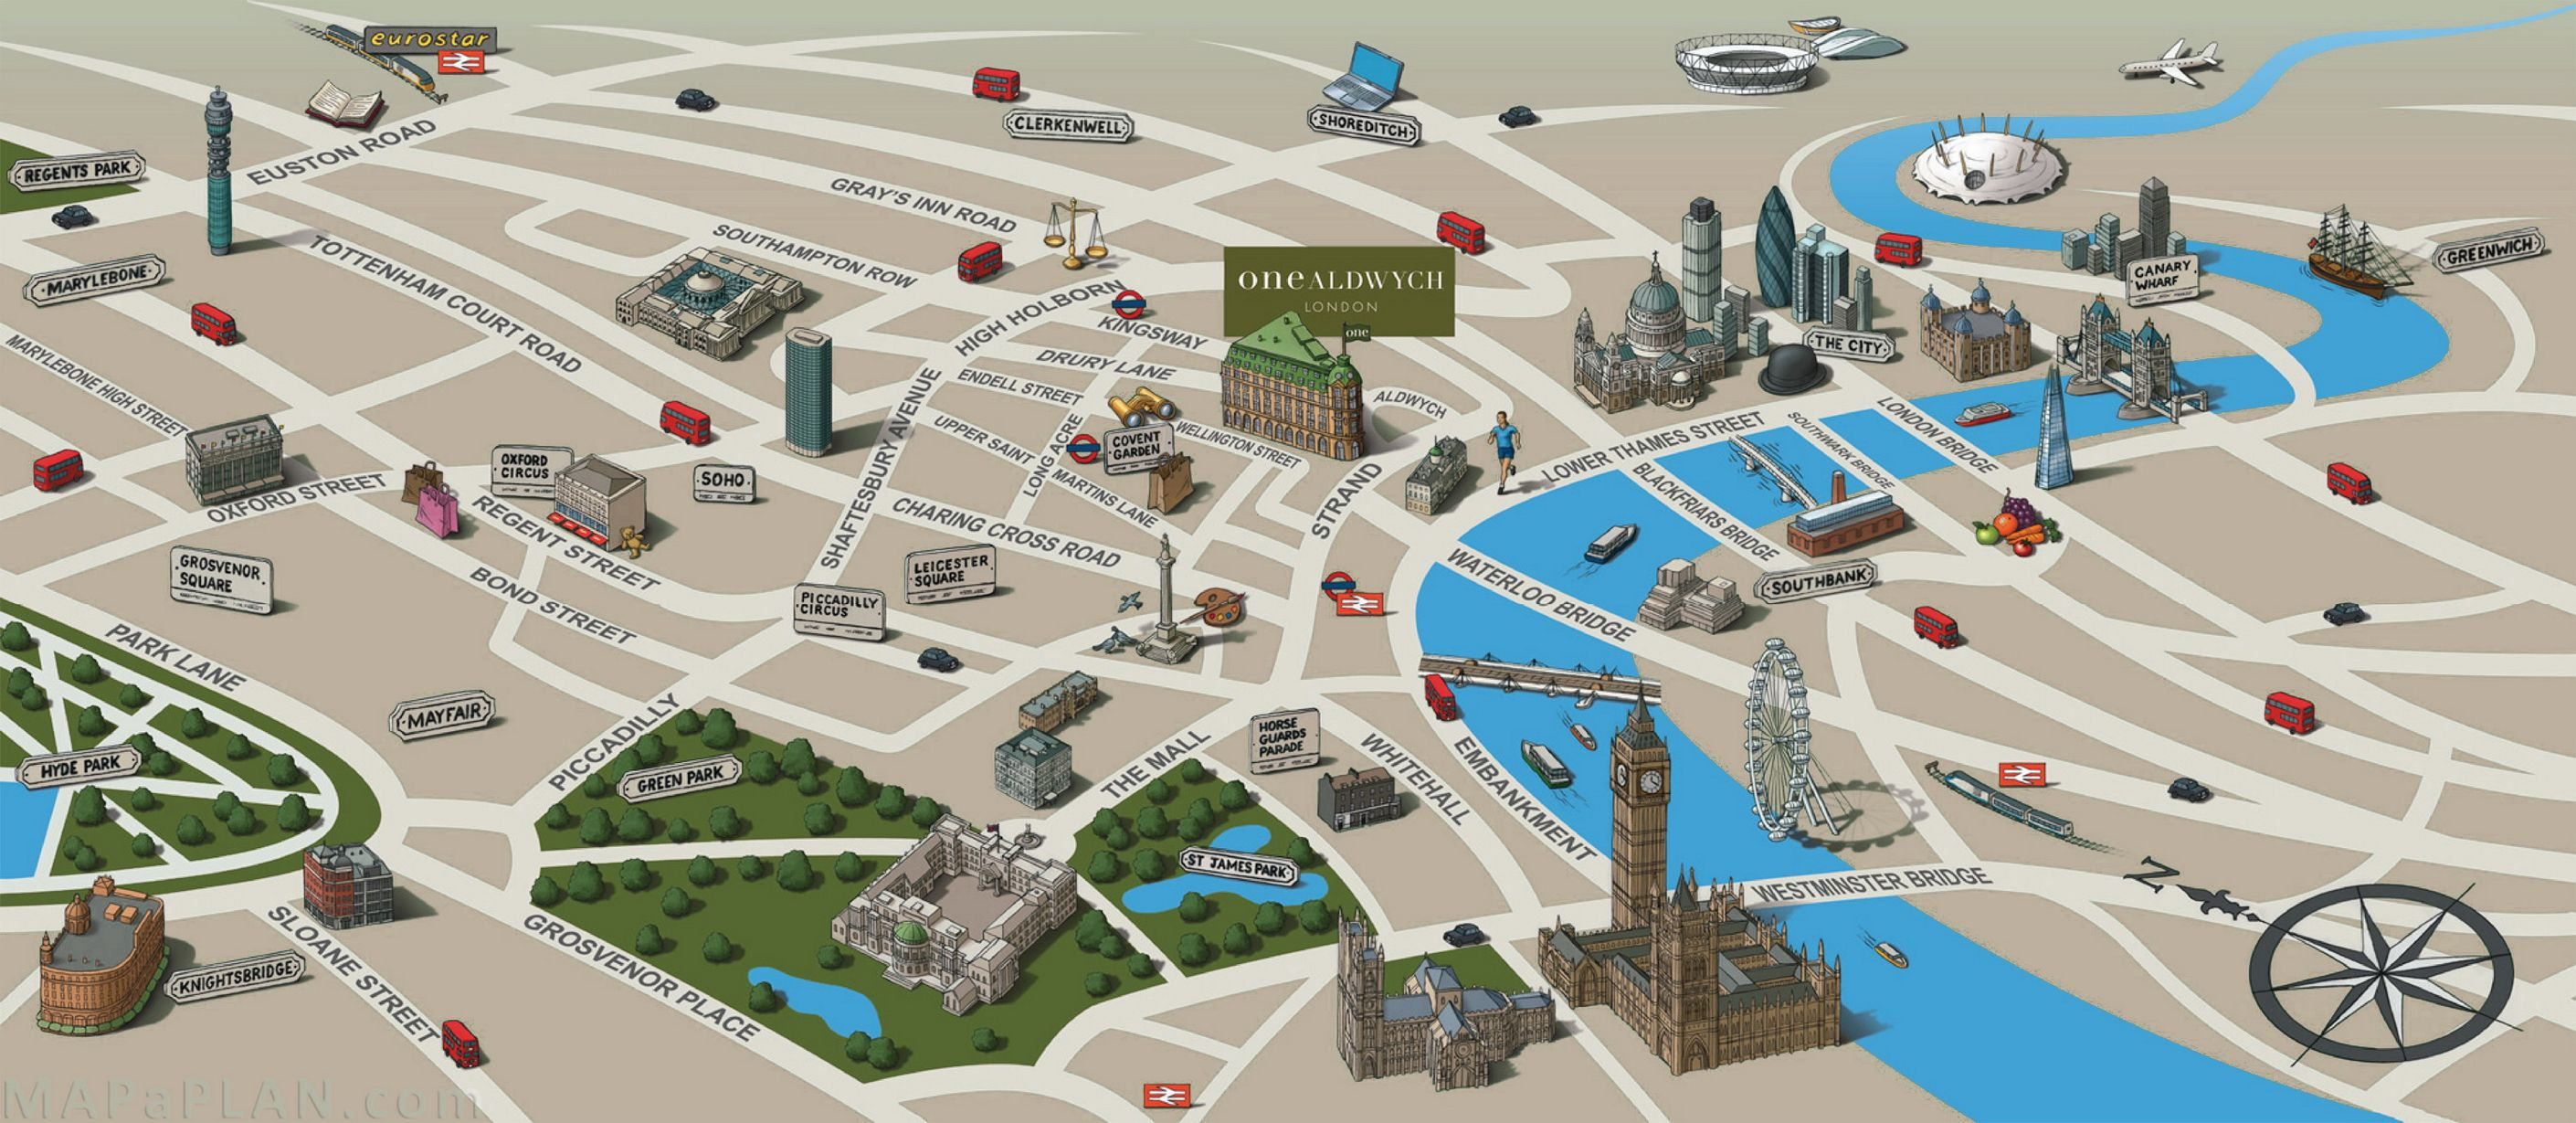 landmarks birds eye view london top tourist attractions map